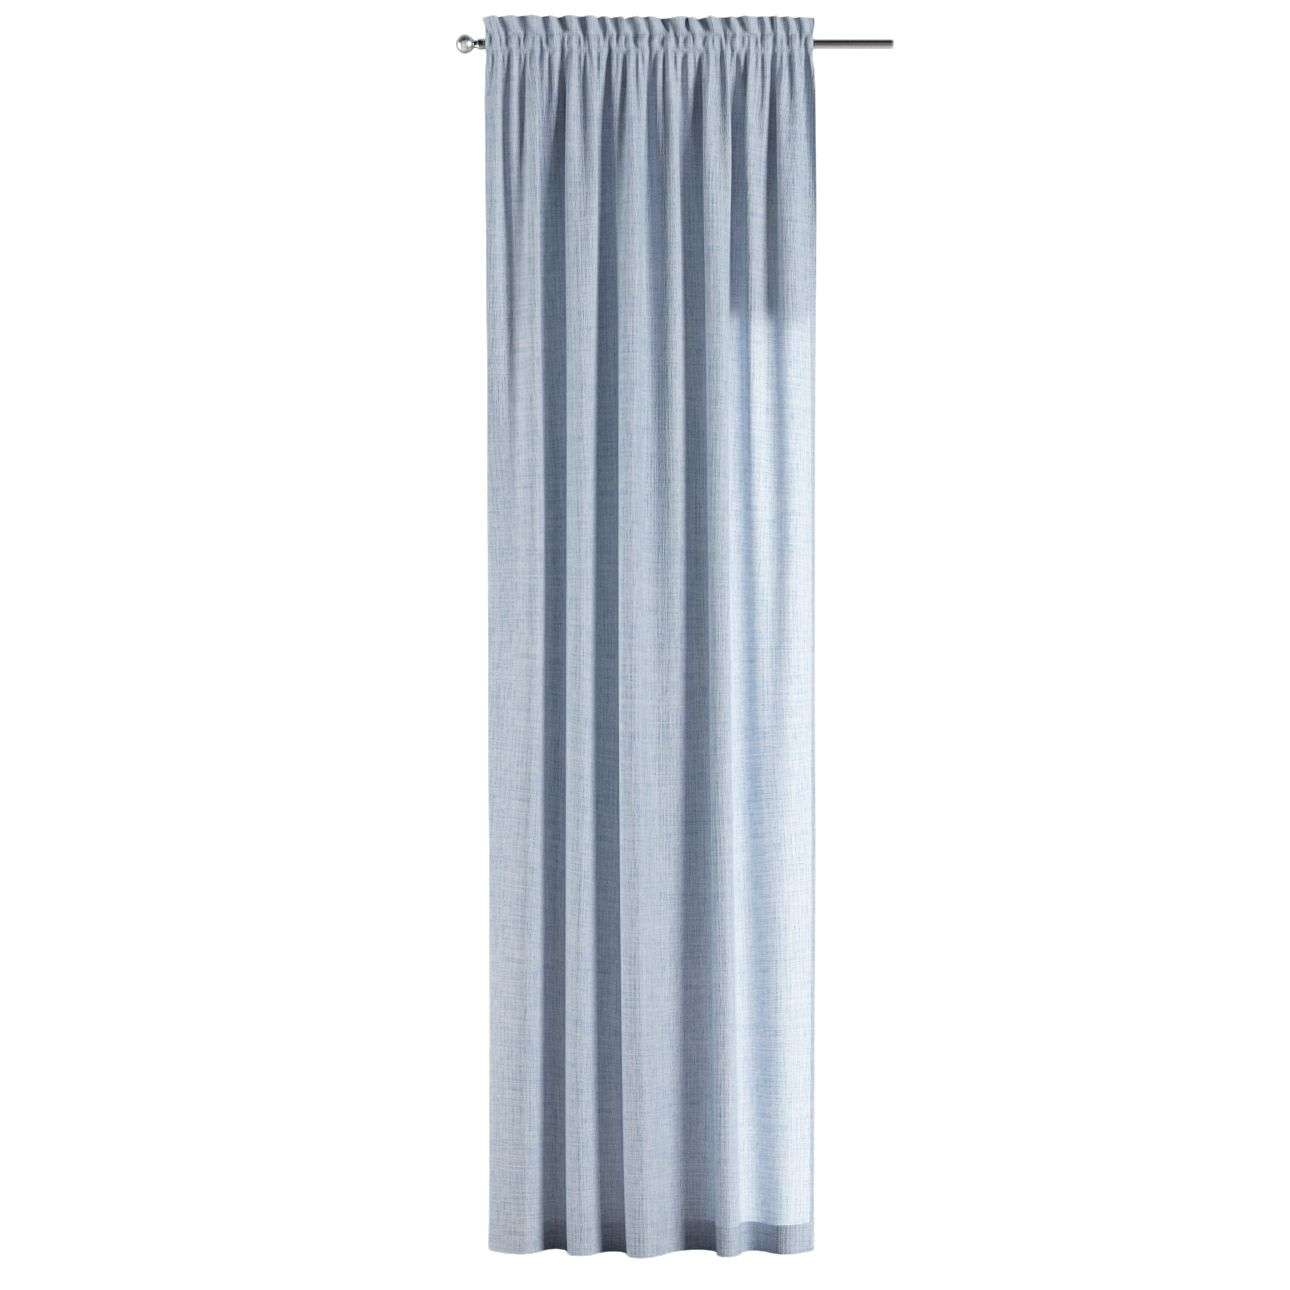 Slot and frill curtains in collection Aquarelle, fabric: 140-74